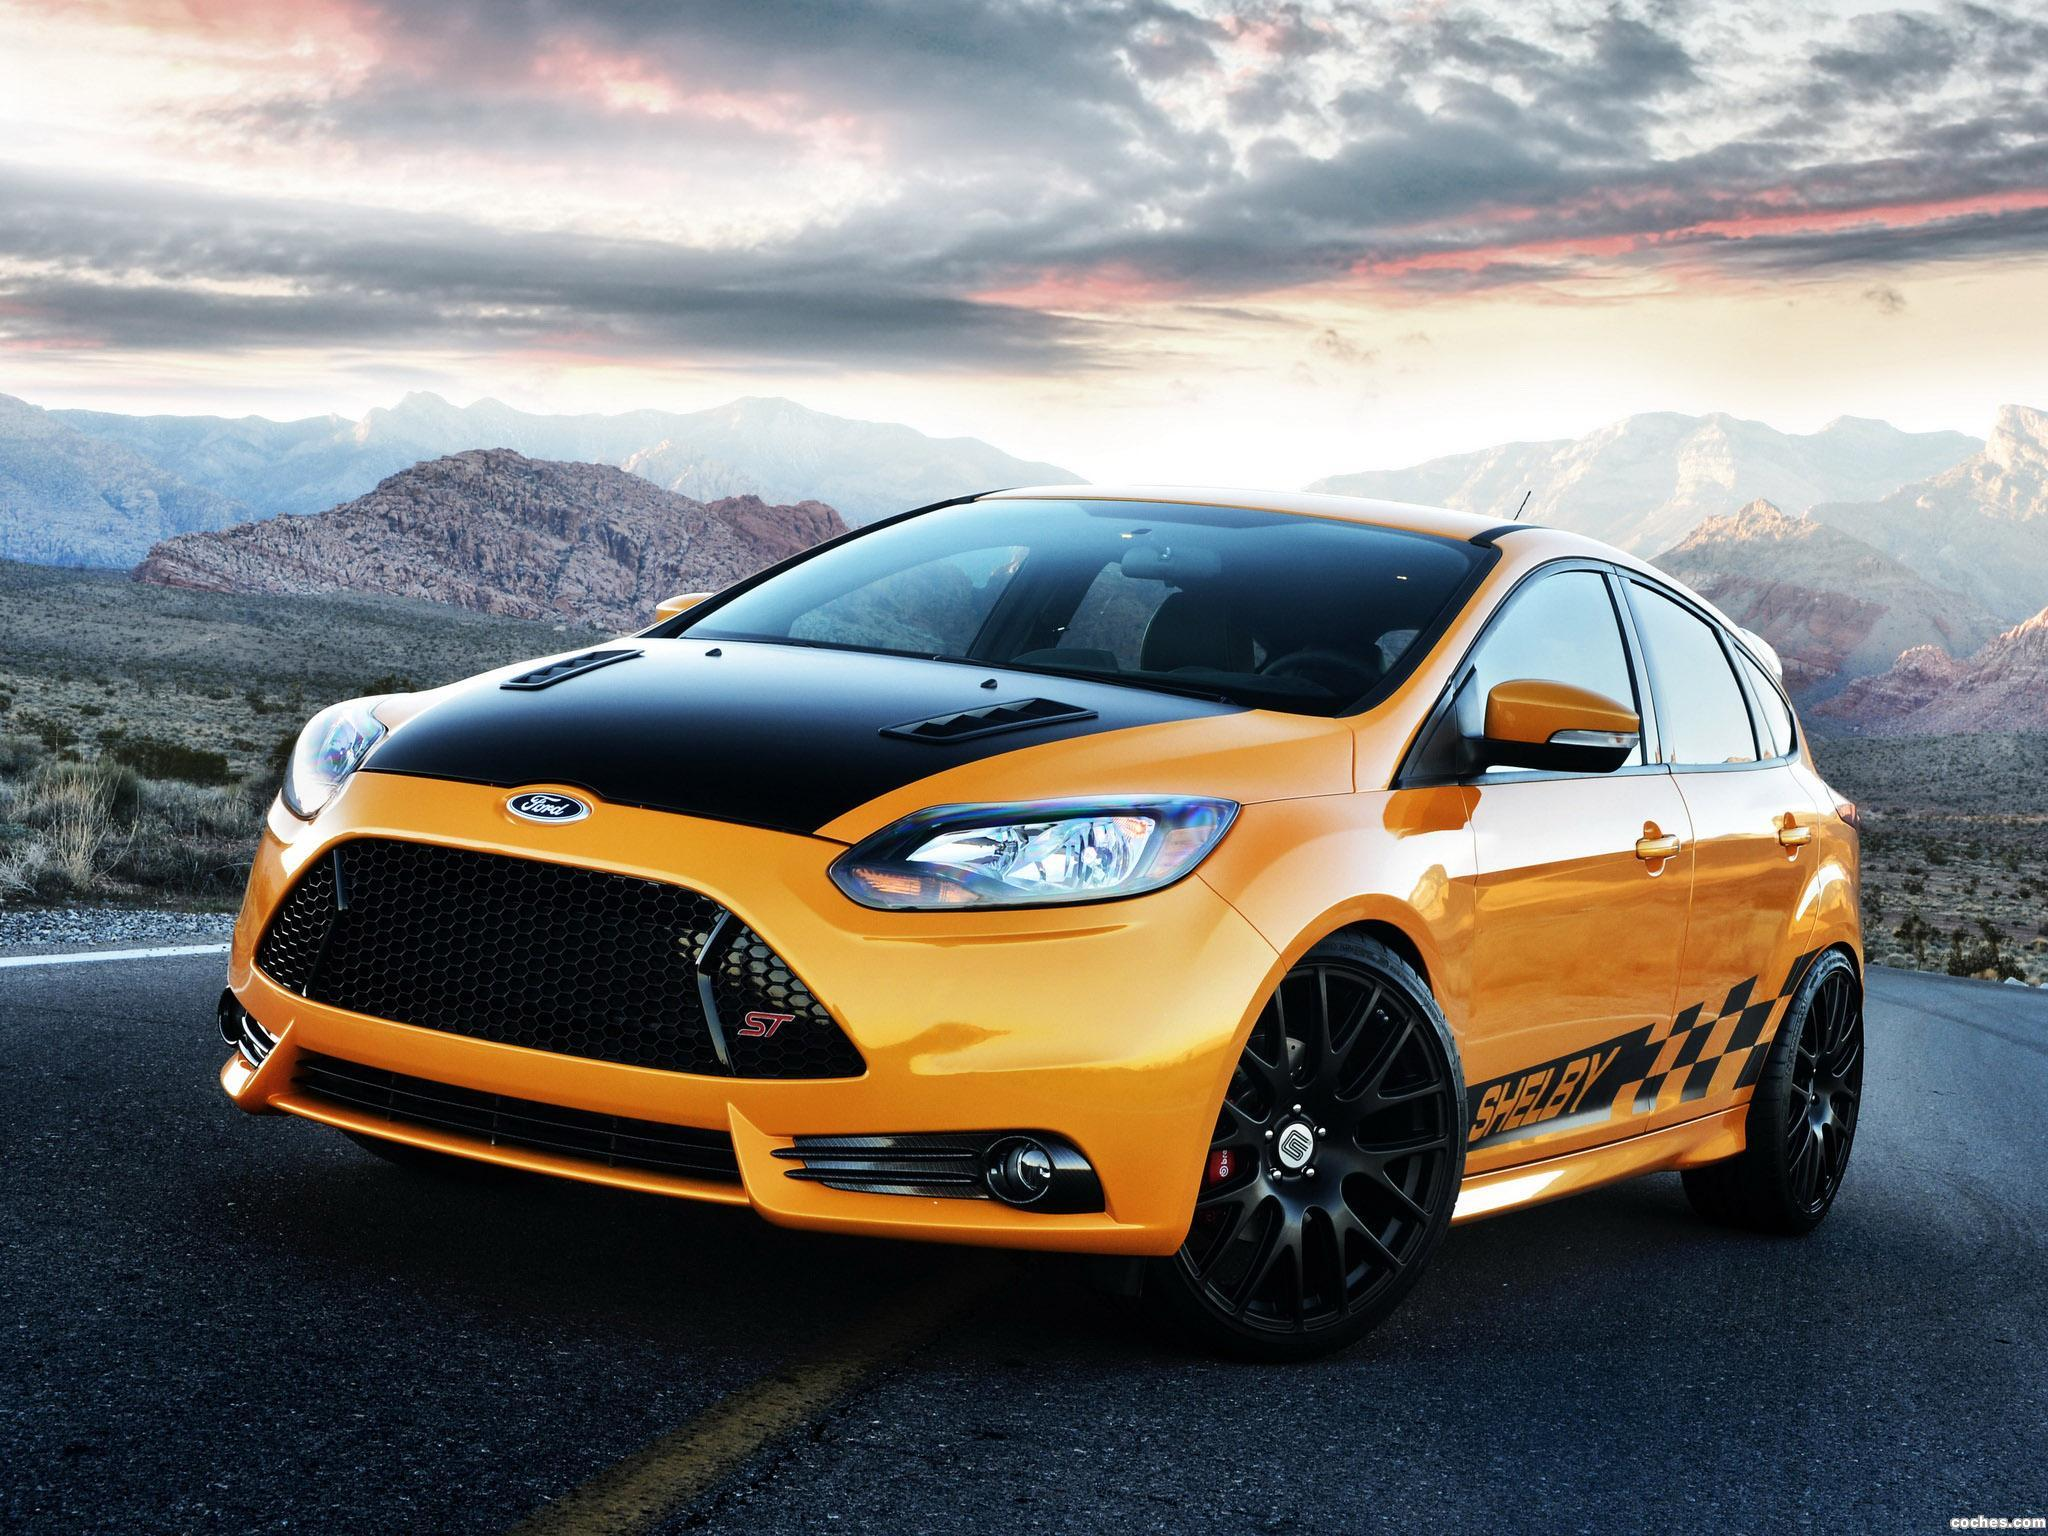 Foto 0 de Shelby Ford Focus ST 2013